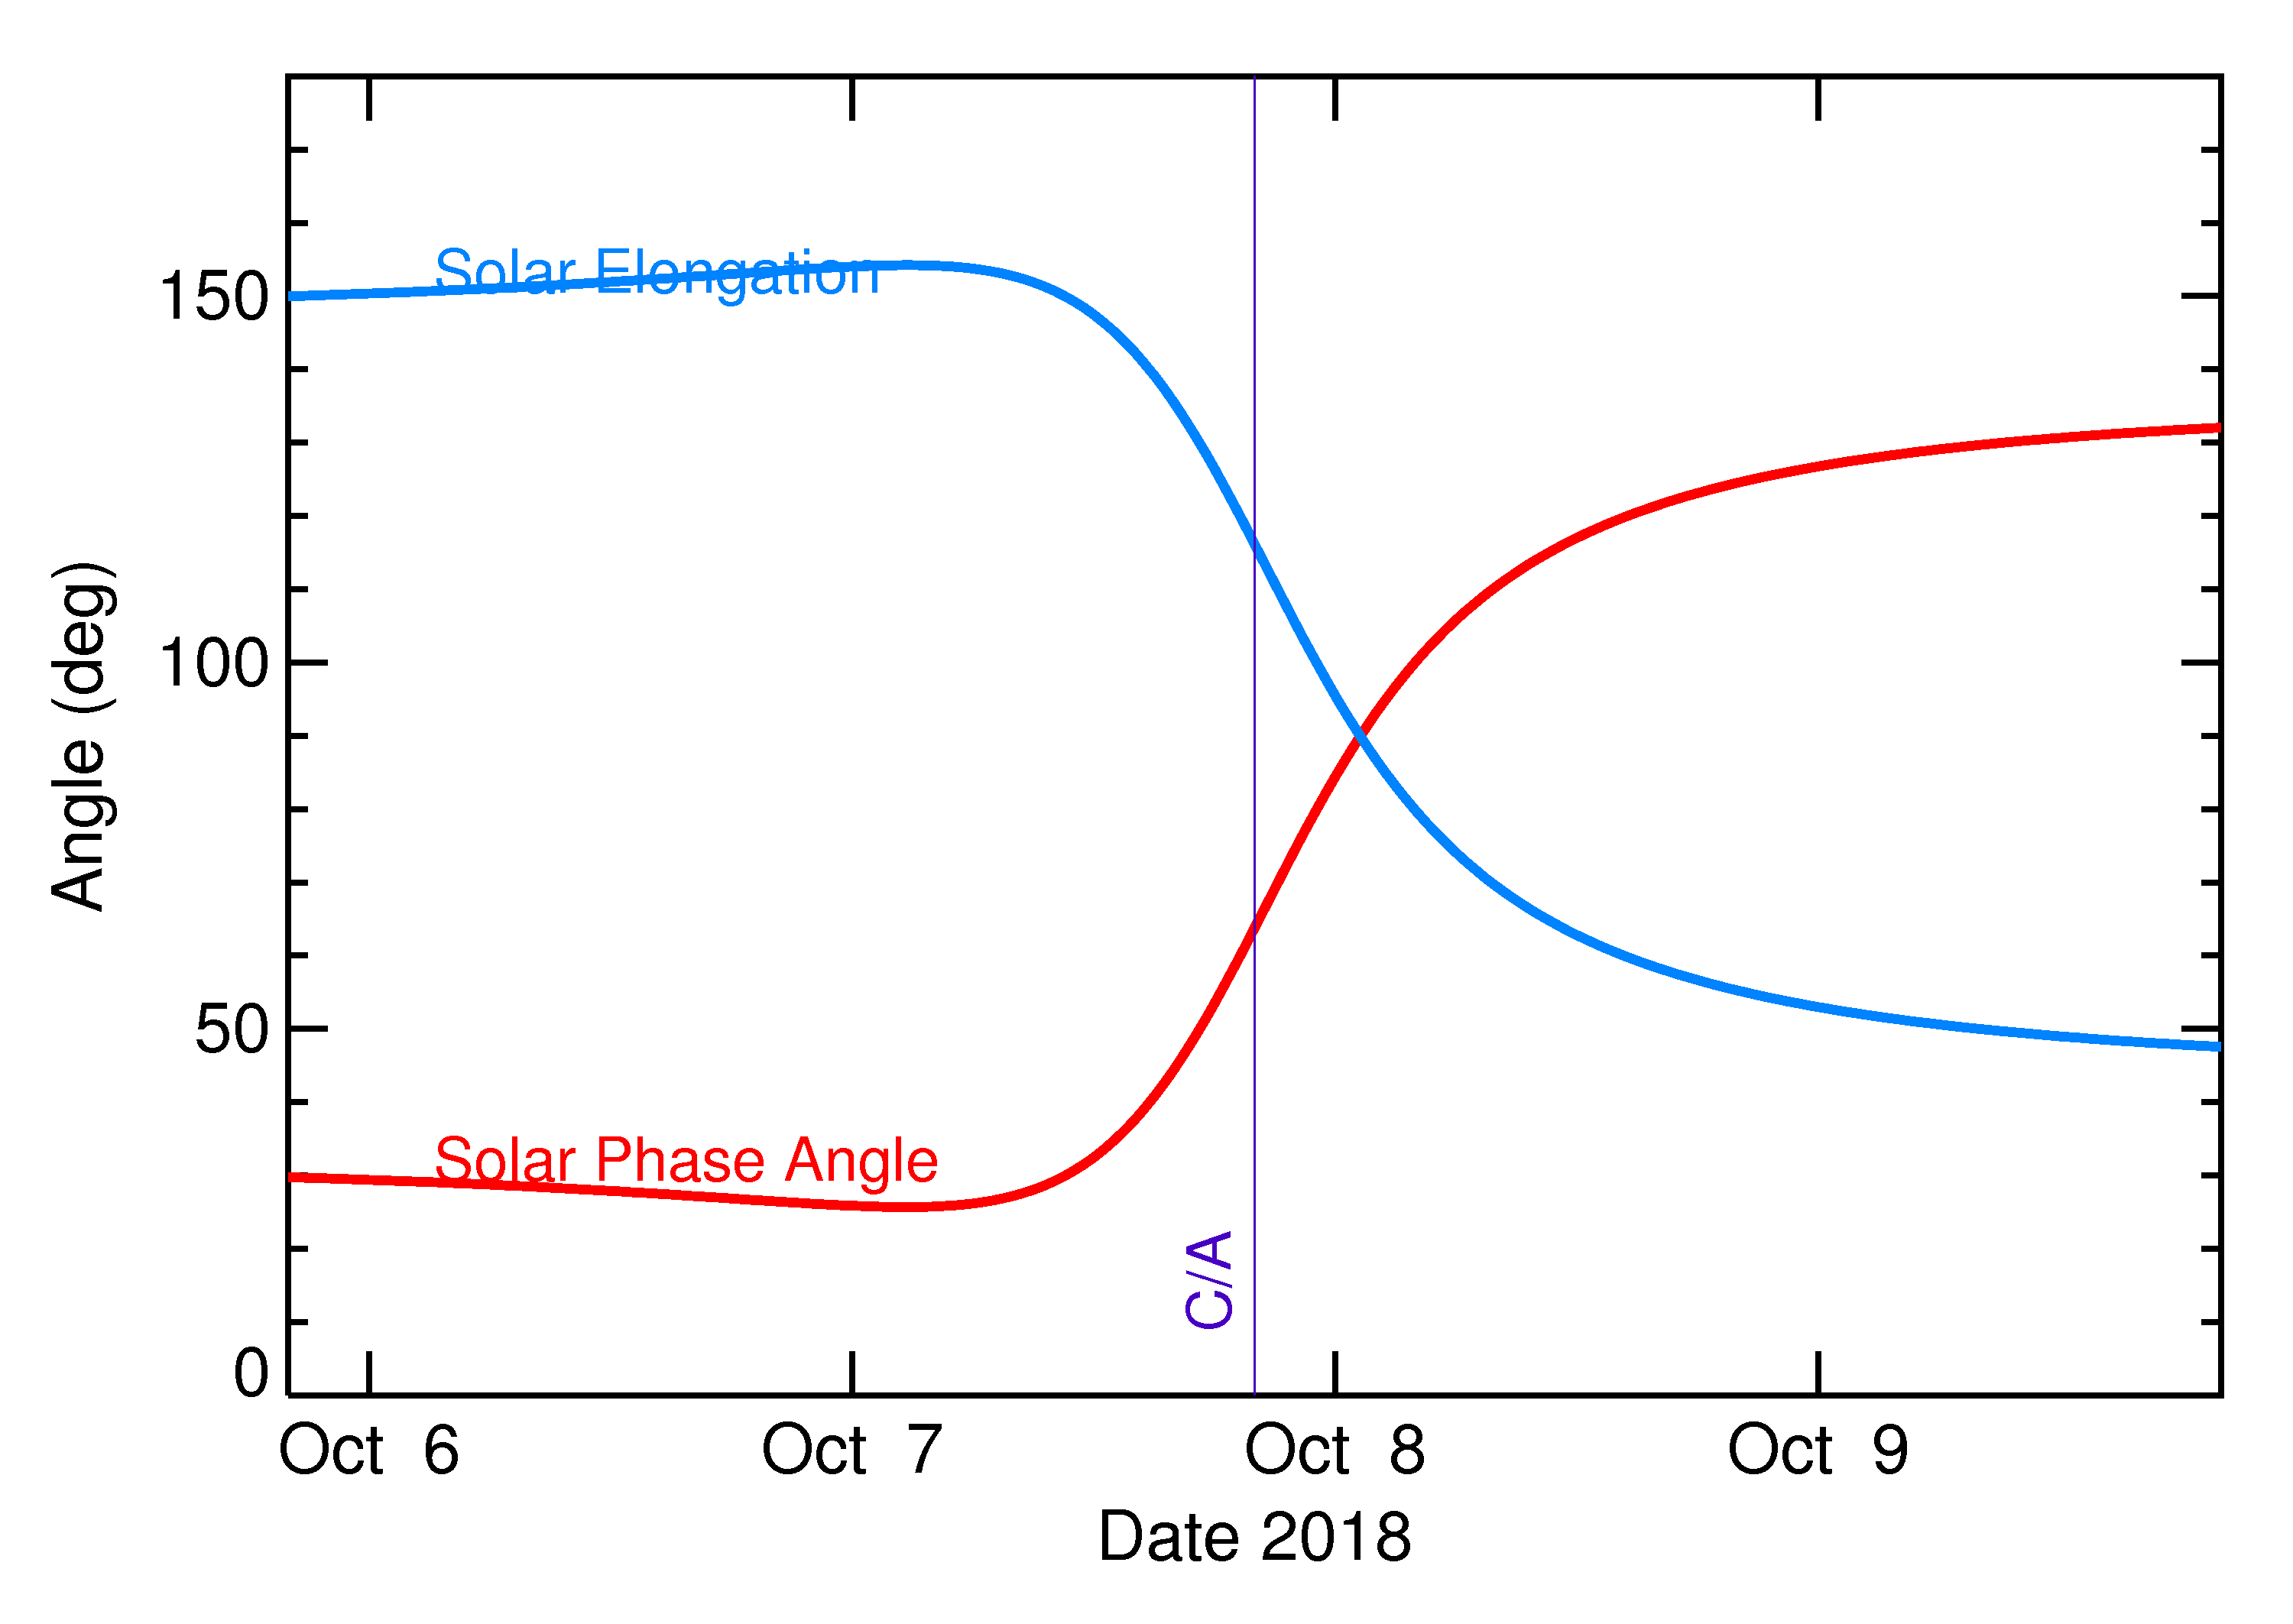 Solar Elongation and Solar Phase Angle of 2018 TV in the days around closest approach